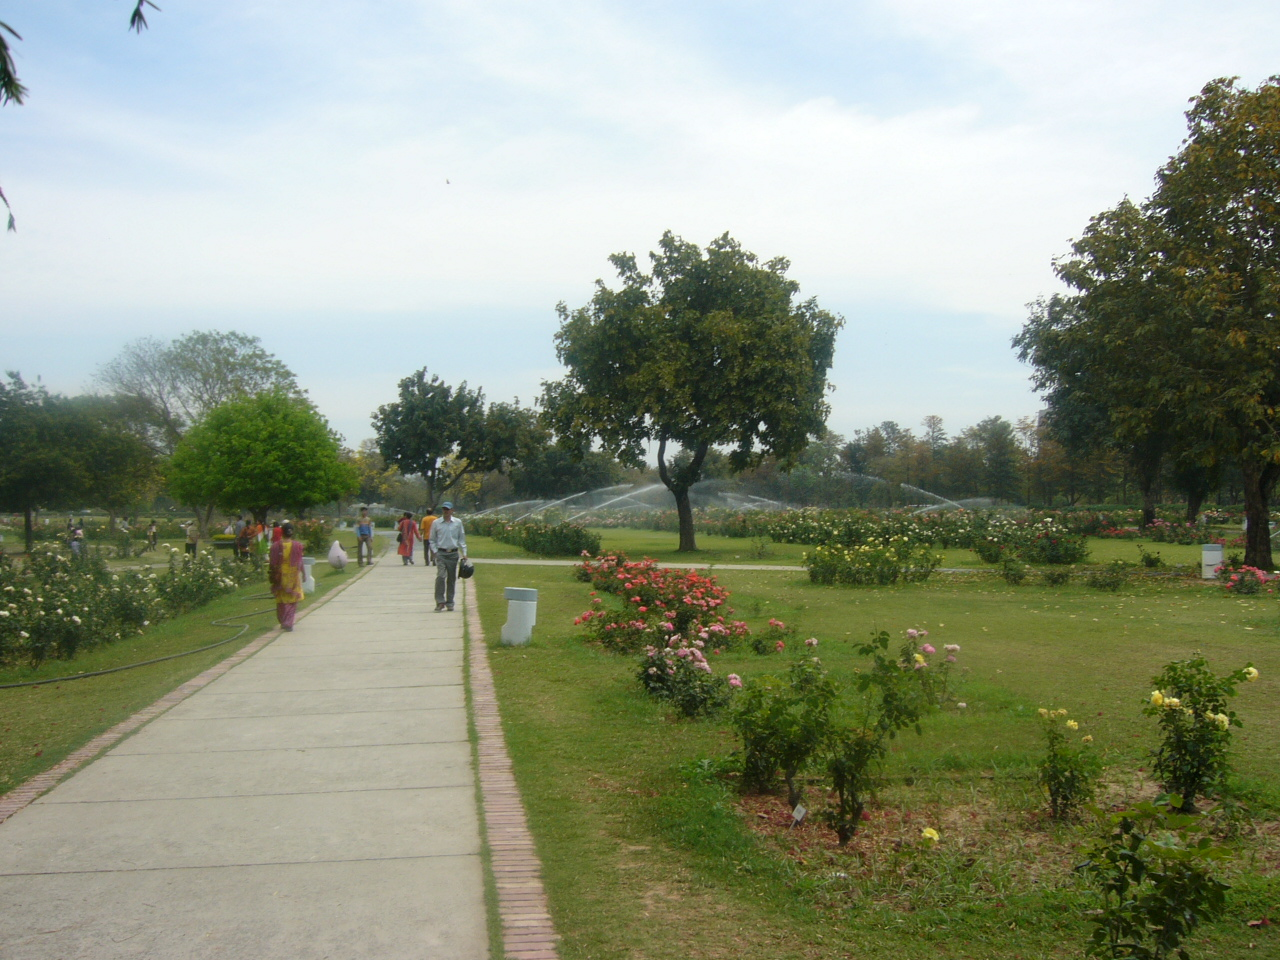 Chandigarh India  city images : Rose Garden Chandigarh India 2 Wikipedia, the free ...